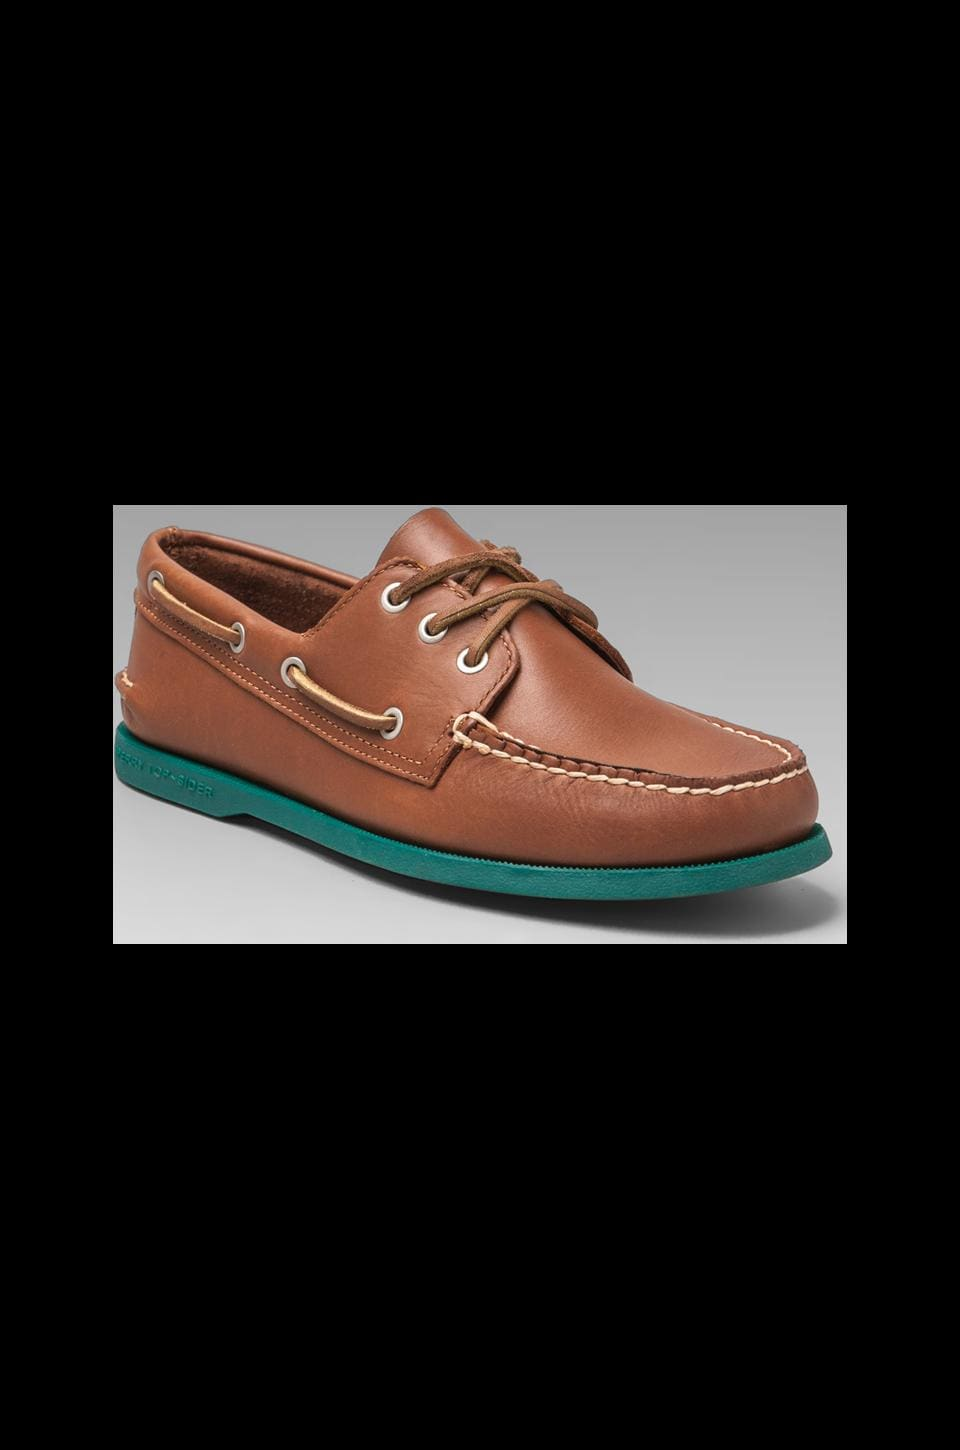 Sperry Top-Sider Silvercloud Collection A/O in Tan/Seaglass